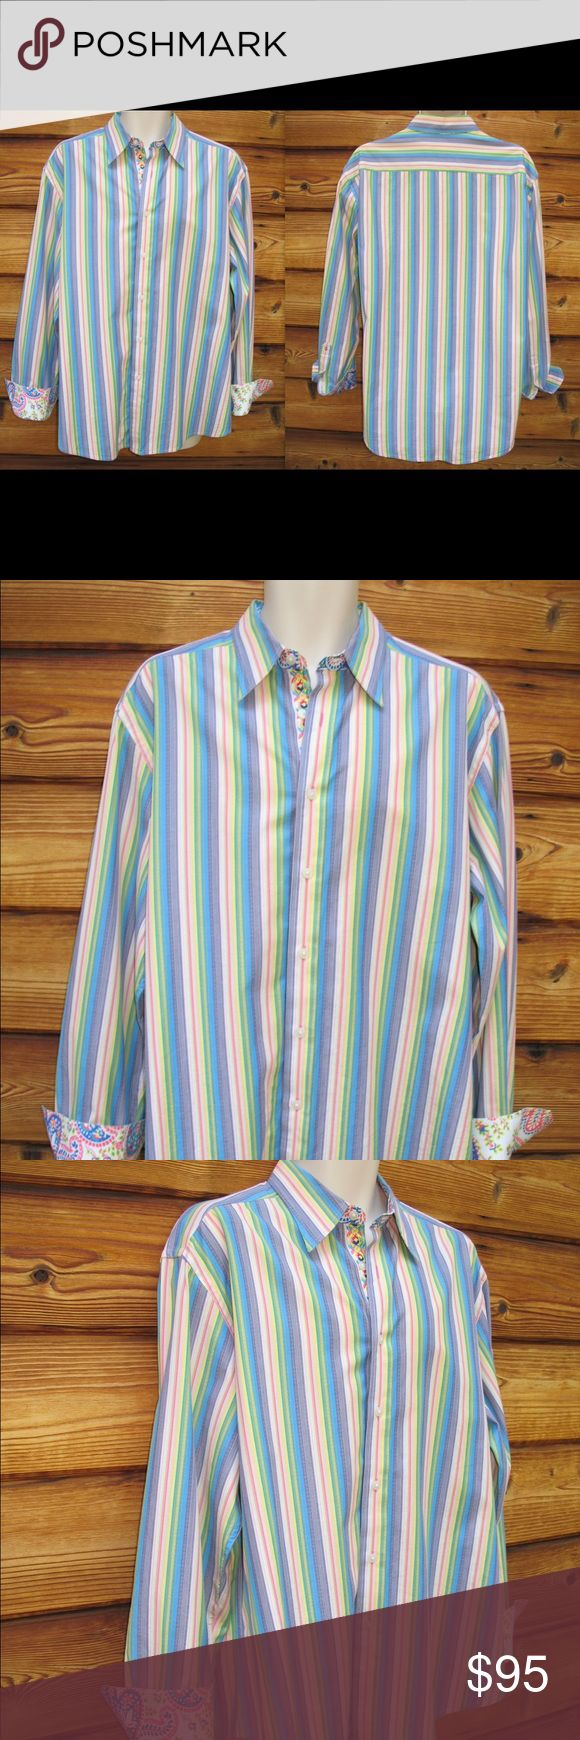 "Men's Robert Graham Flip Cuff Geometric Shirt Men's Robert Graham Flip Cuff Geometric Print Shirt, Size X-Large  *Excellent condition.  Details: Robert Graham Size: X-Large Color: Multi Embroidered down front closure Contrast print fabric on the collar and cuff 100% Cotton Machine Wash  Measurements: Length: 30"" Chest: 50"" Waist: 48"" Robert Graham Shirts Casual Button Down Shirts"